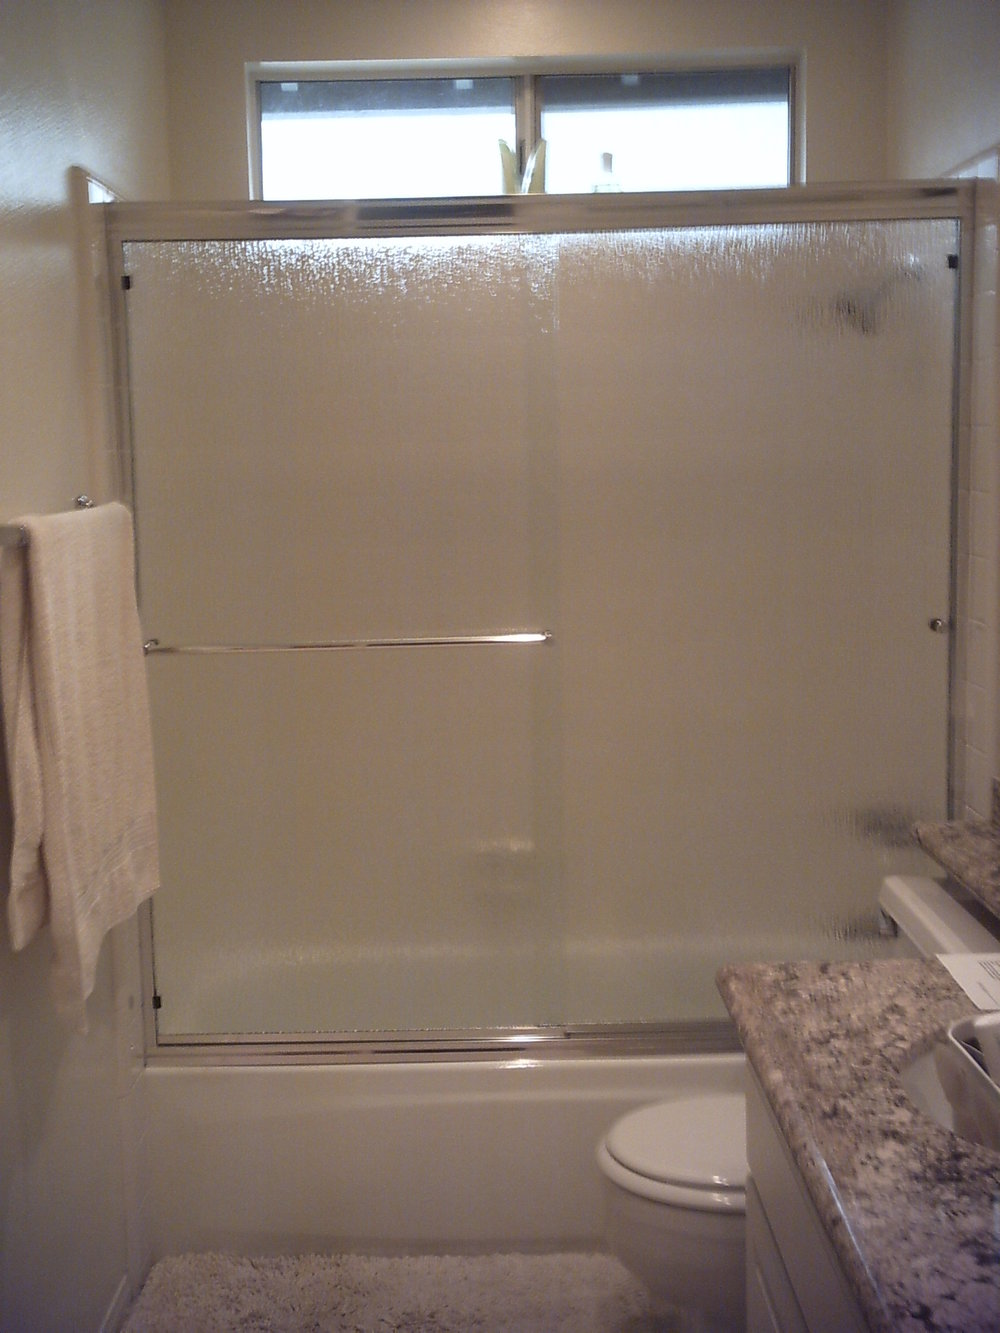 Shower-Doors-Residential-Photos-15.jpg